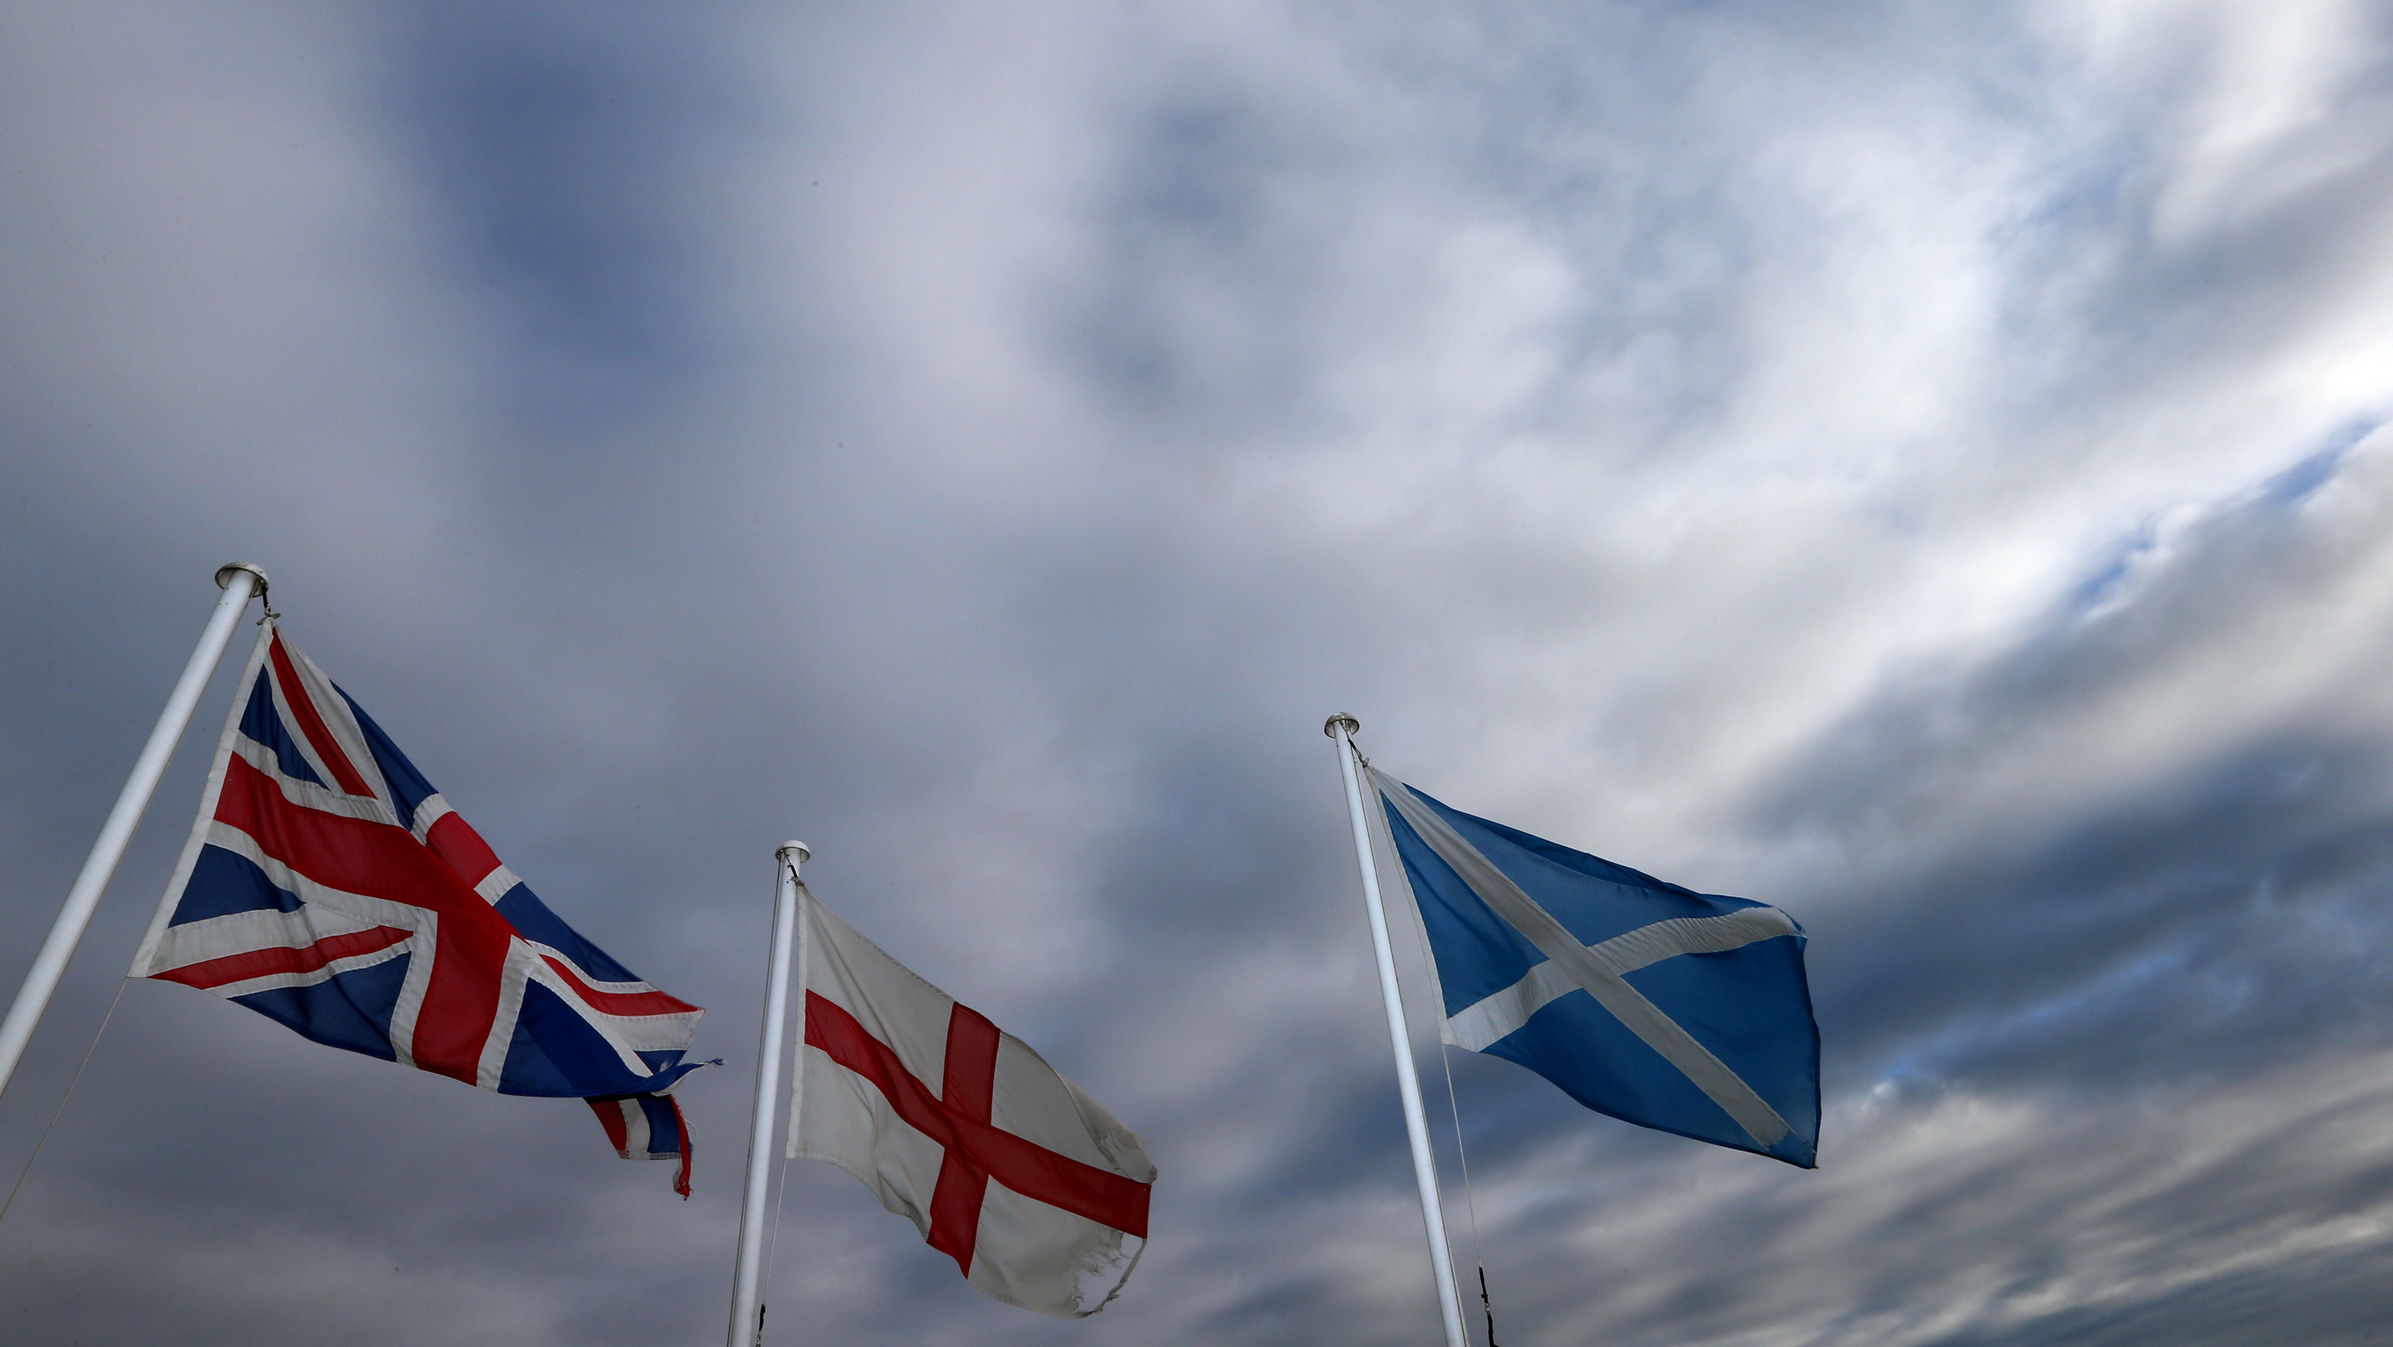 From left, the Union Jack, St George's Cross and the Saltire fly at Adderstone, England, Monday, Sept. 8, 2014. The British government plans to offer Scotland more financial autonomy in the coming days as polls predict a very close vote in the September 18 on Scottish independence. (AP Photo/Scott Heppell)